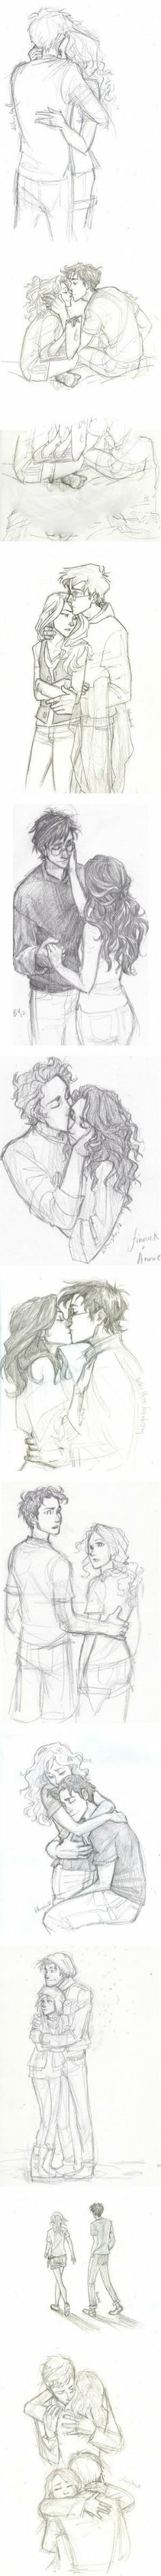 Drawing a couple - perfect for my books! (I earased the third picture due to a tiny bit of innapropriat stuff)